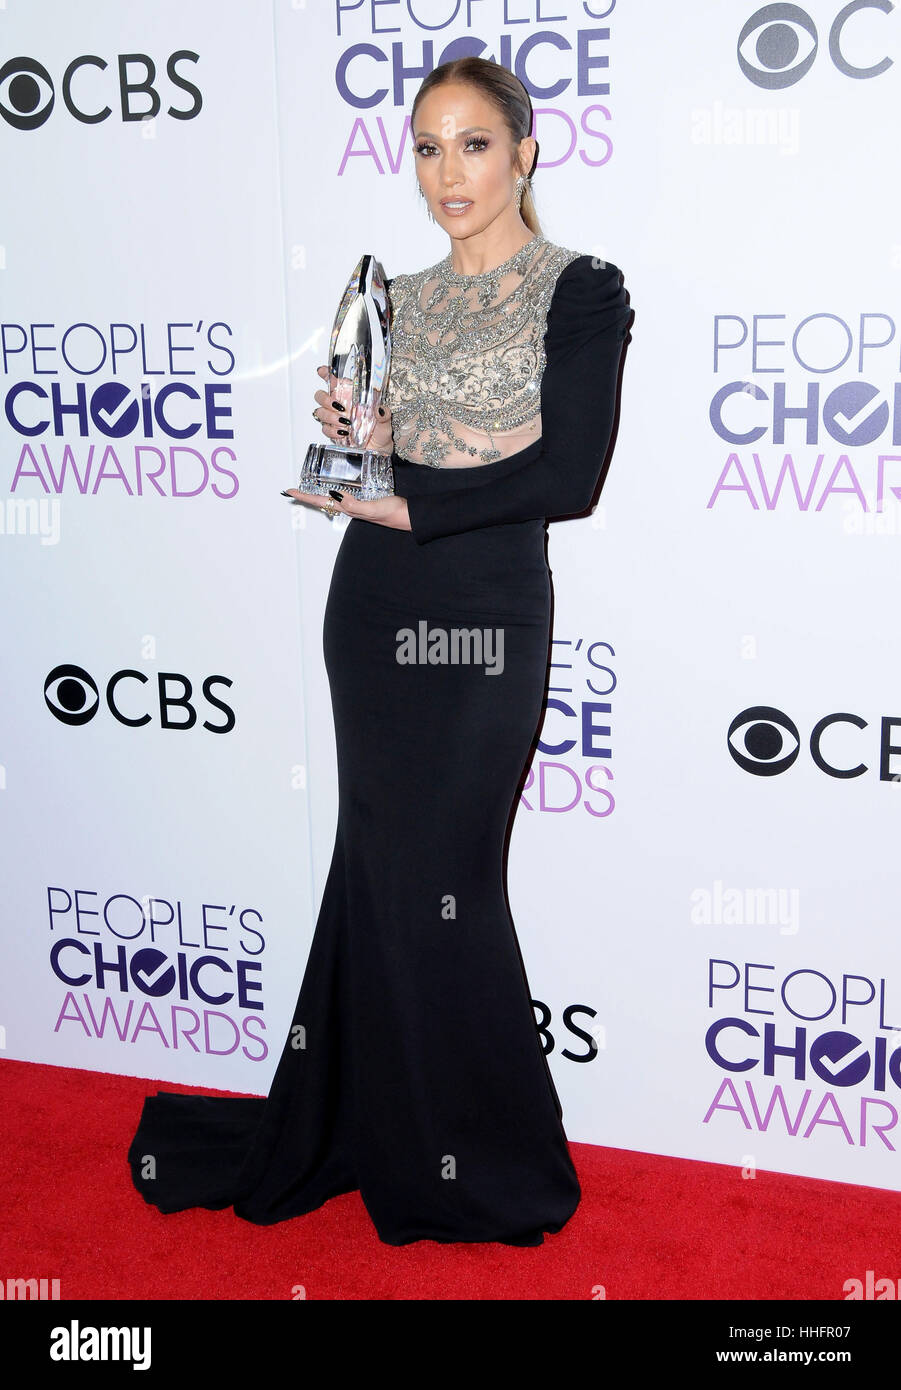 Los Angeles, CA, Stati Uniti d'America. 18 gennaio, 2017. Jennifer Lopez. 2017 People's Choice Awards 2017 Immagini Stock